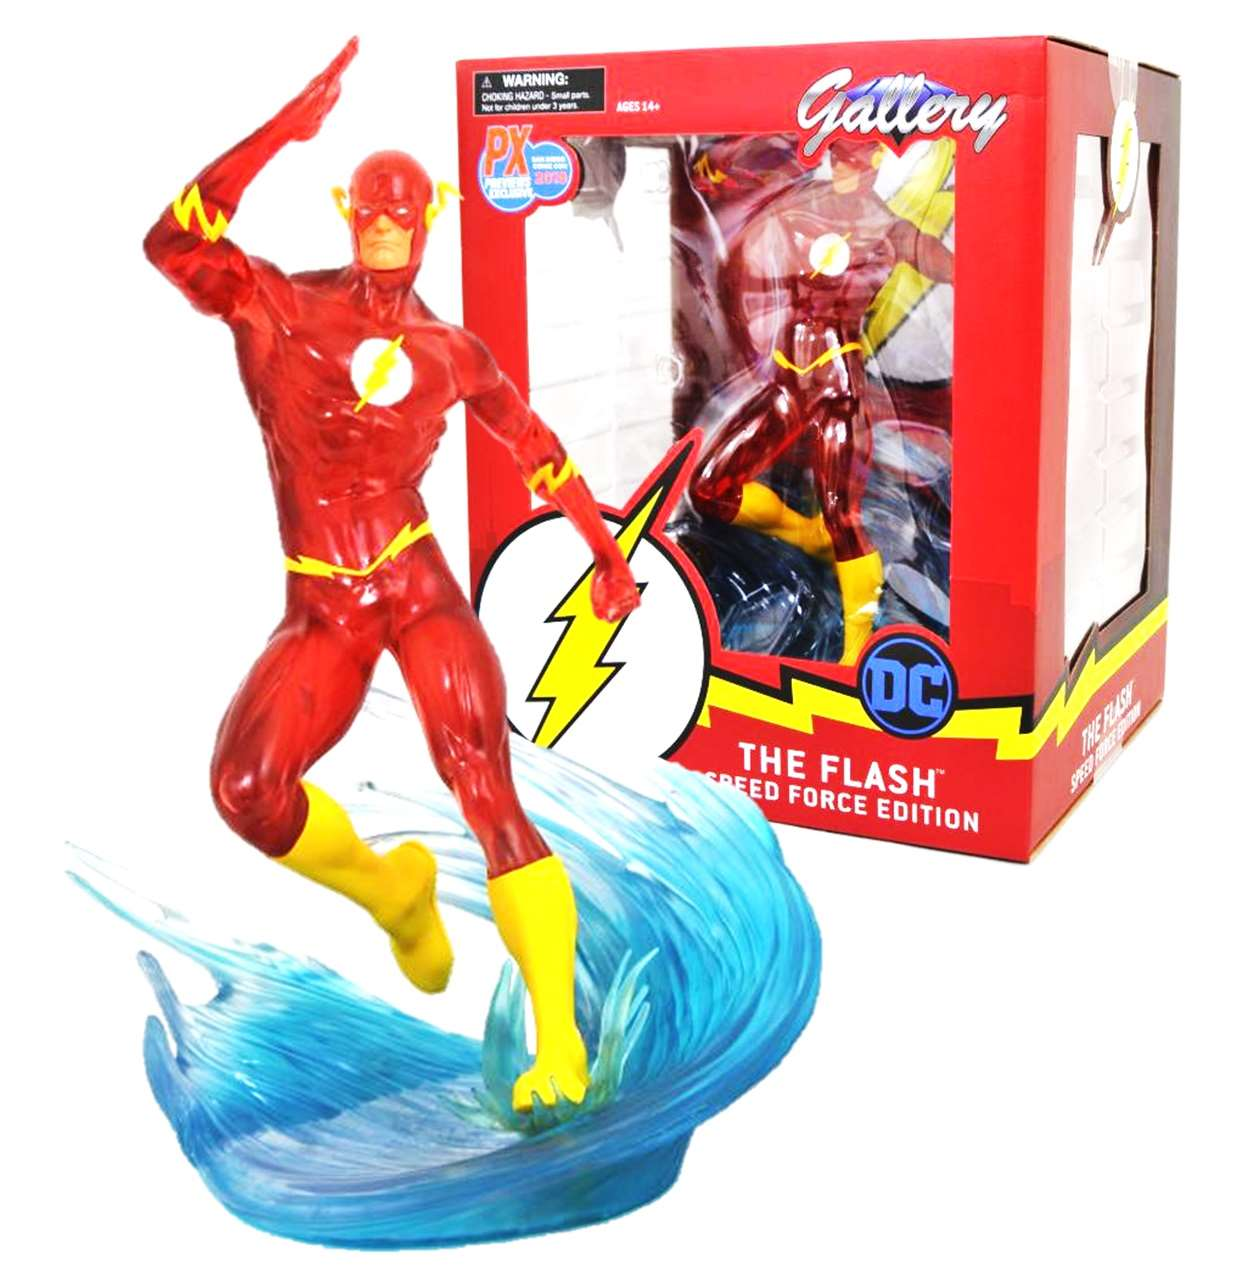 The Flash Diorama Speed Force Edition Gallery Exclusive P X